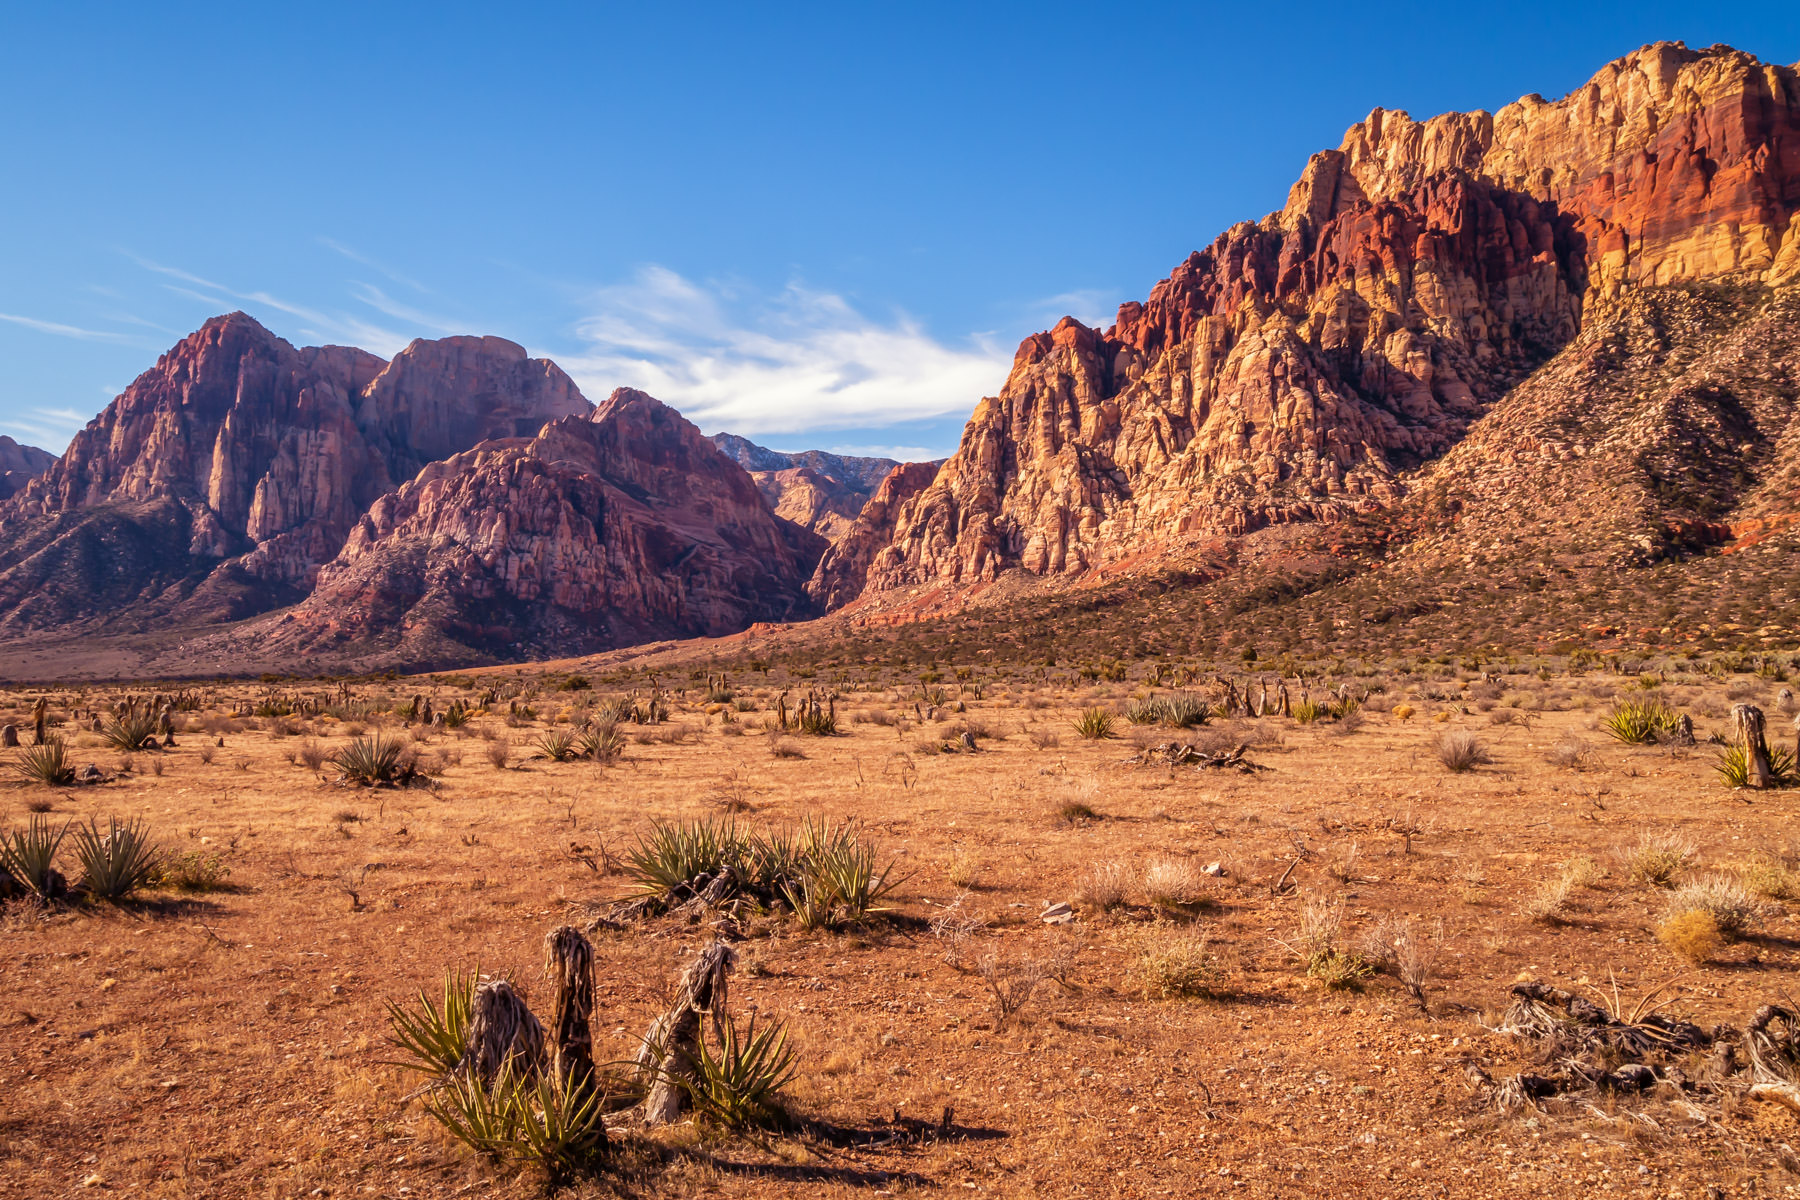 The rugged, arid landscape of Nevada's Red Rock Canyon stretches into the distance.